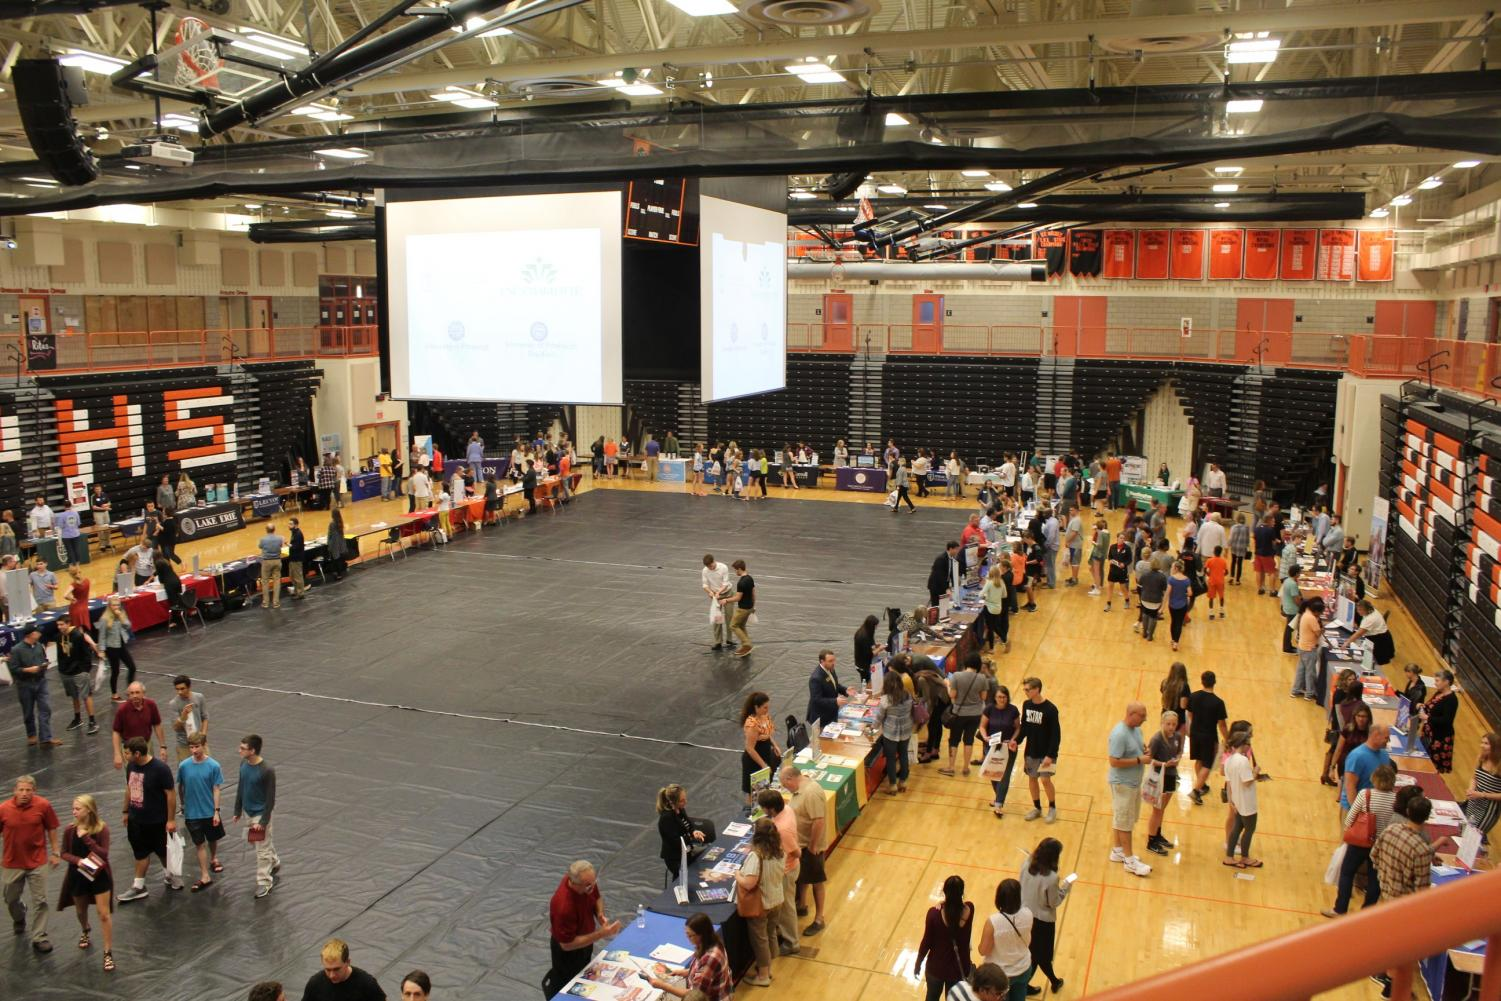 BUZZING WITH INFORMATION, 132 colleges pitched themselves to 1500 students at the 2017 College Fair.